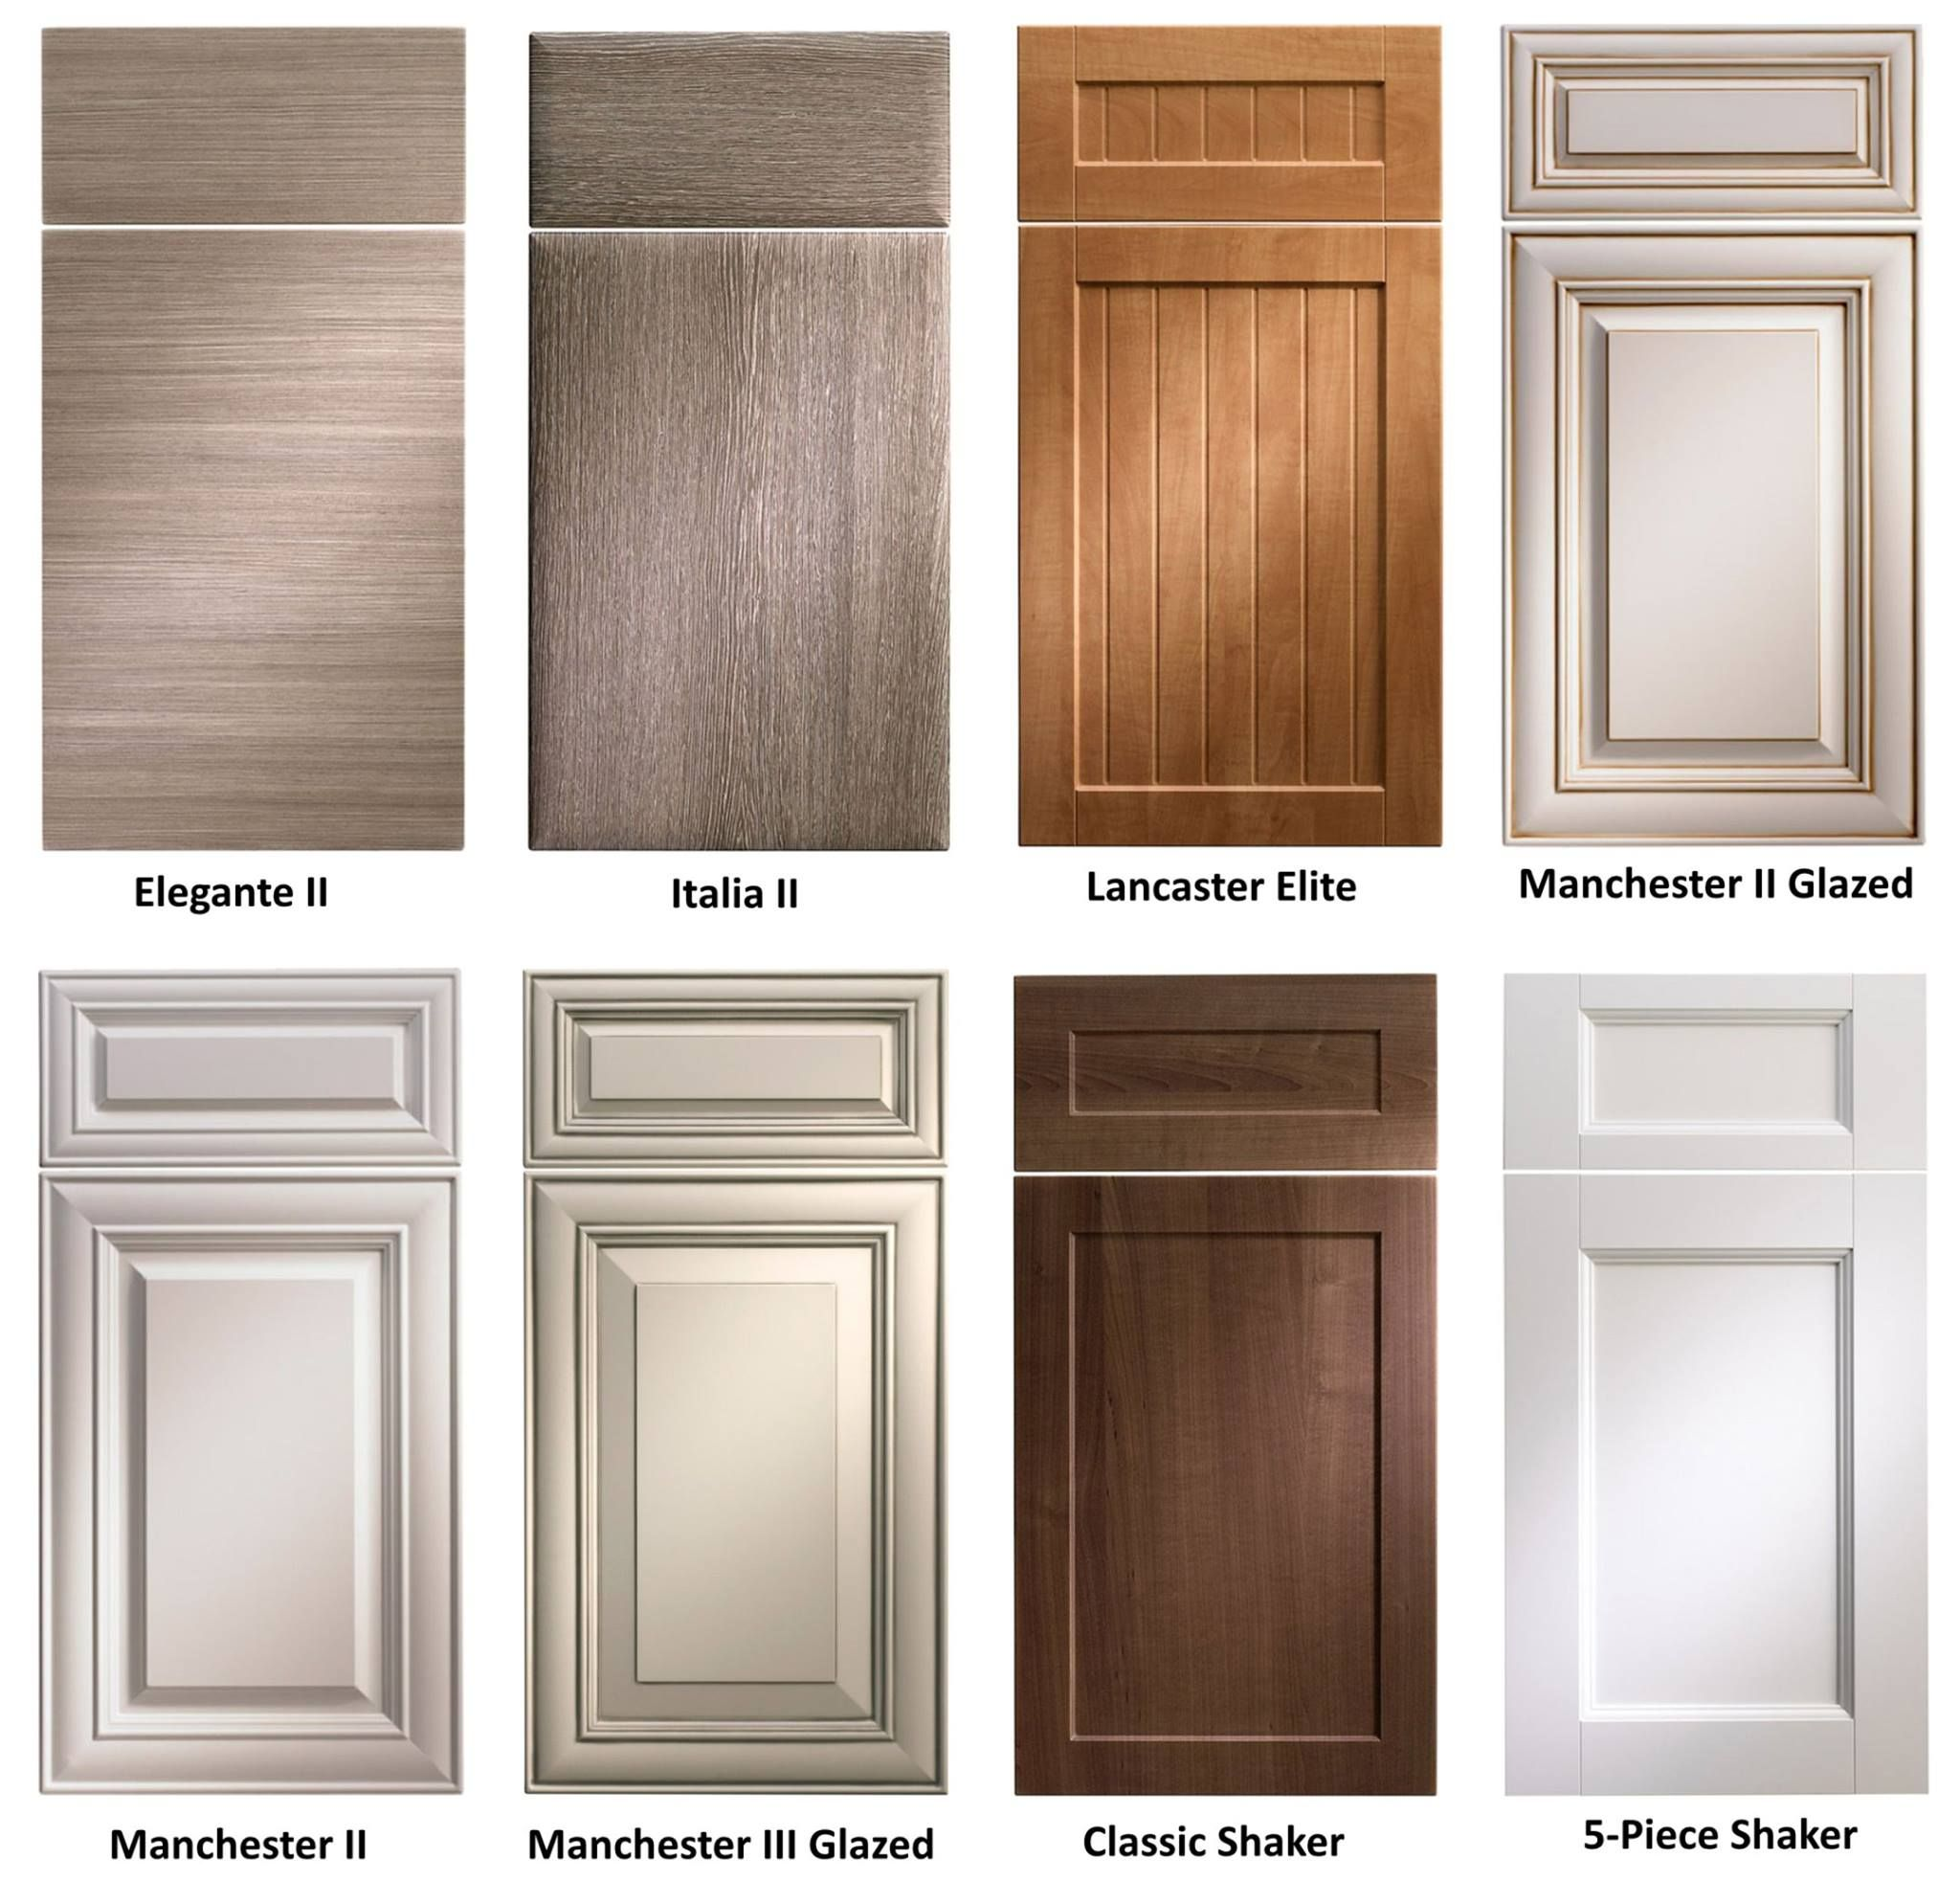 Reface Kitchen Cabinet Doors: Popular Cabinet Door Styles For Kitchen Cabinet Refacing-2